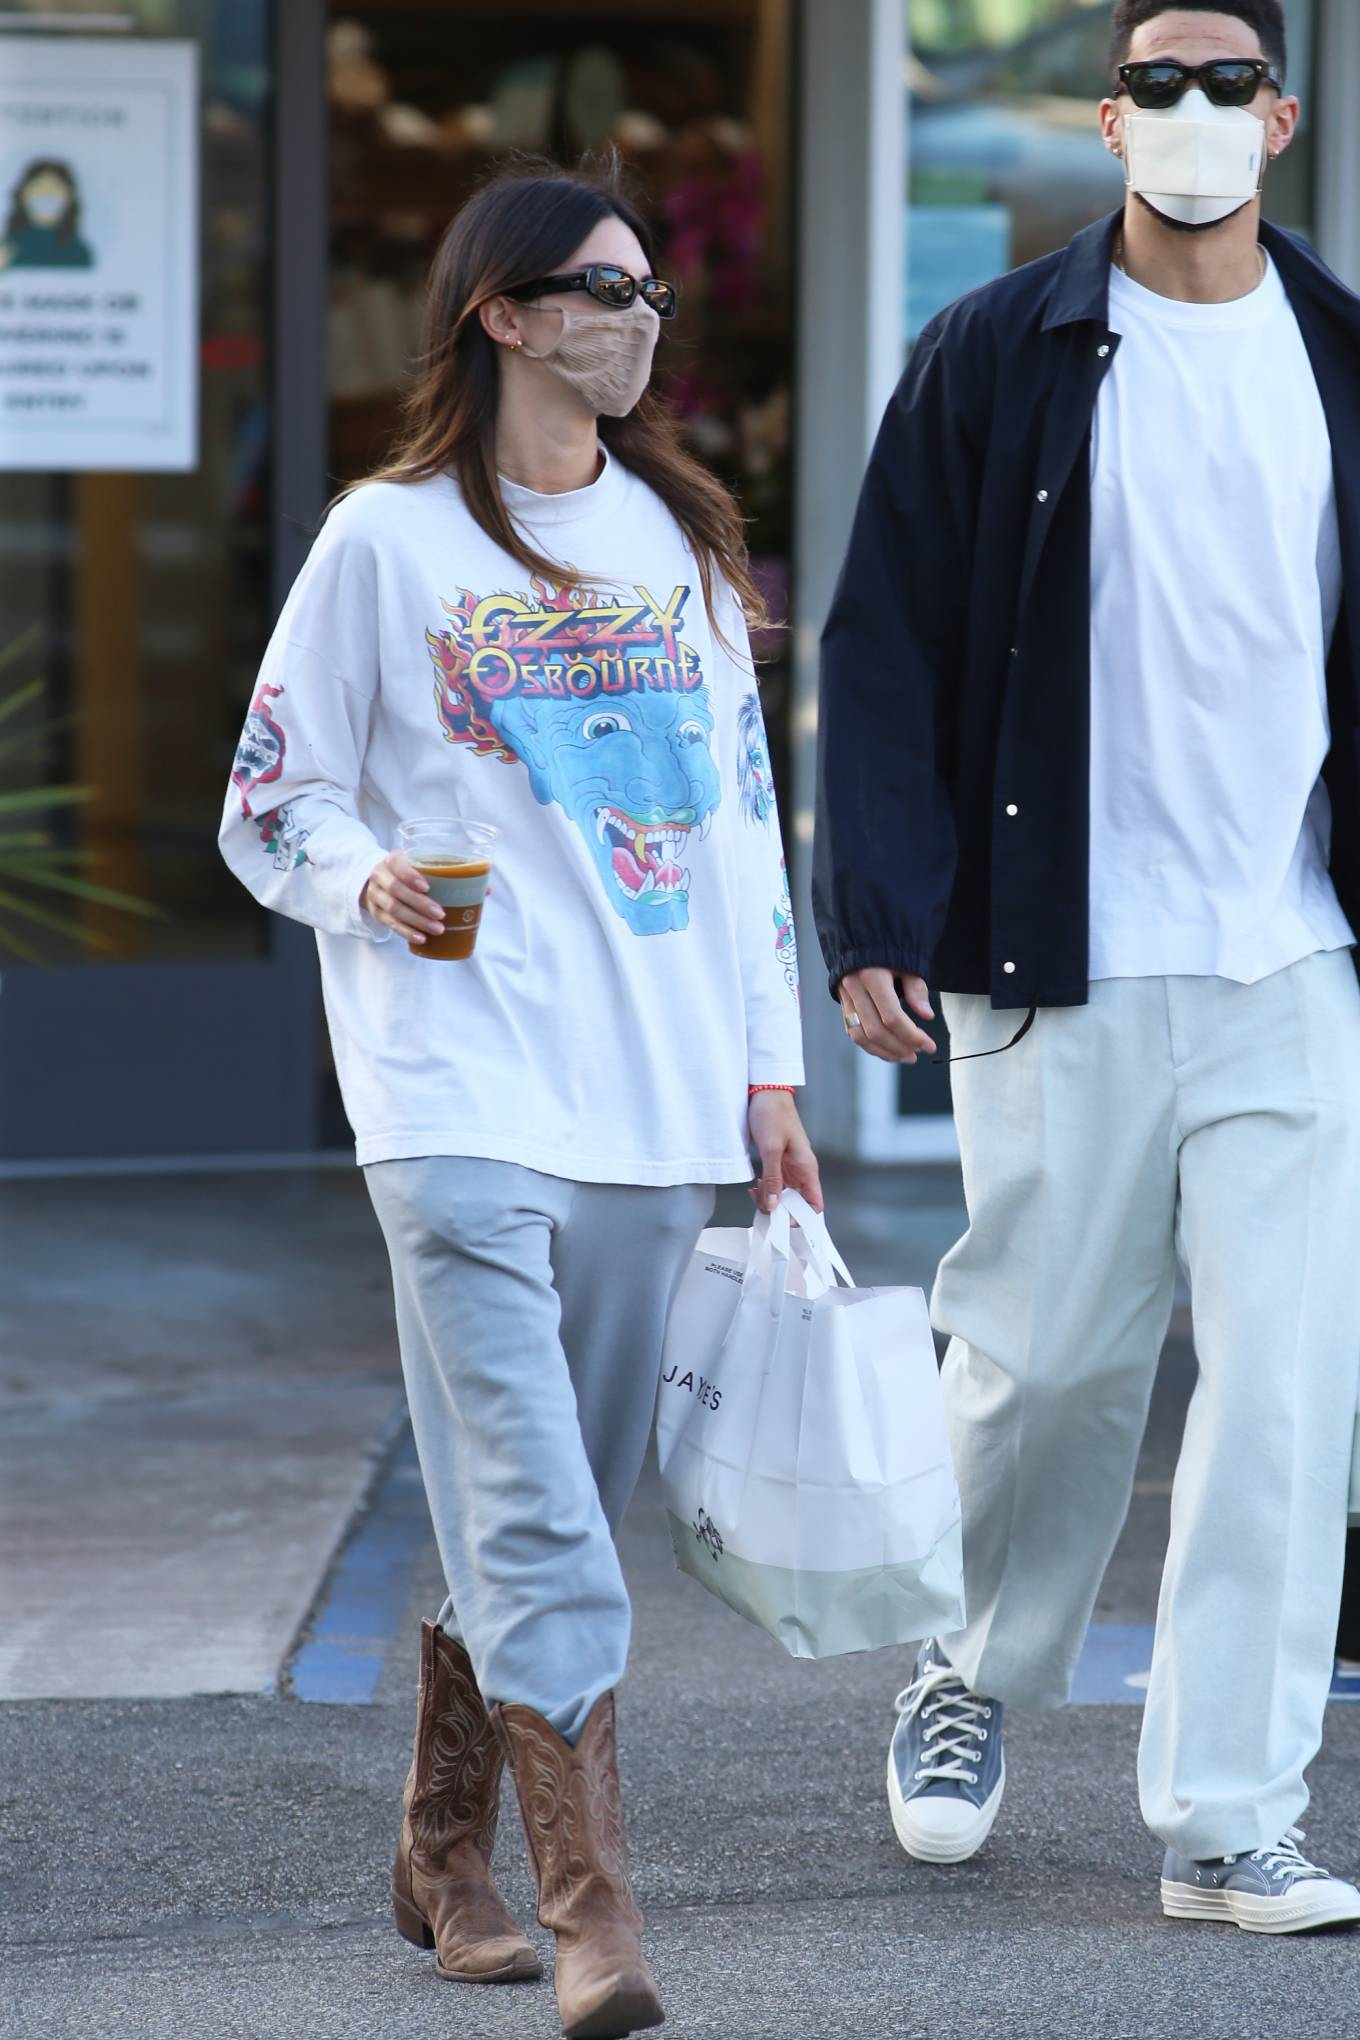 Kendall Jenner donning a oversized cotton graphic tee with full sleeves and a crew neck